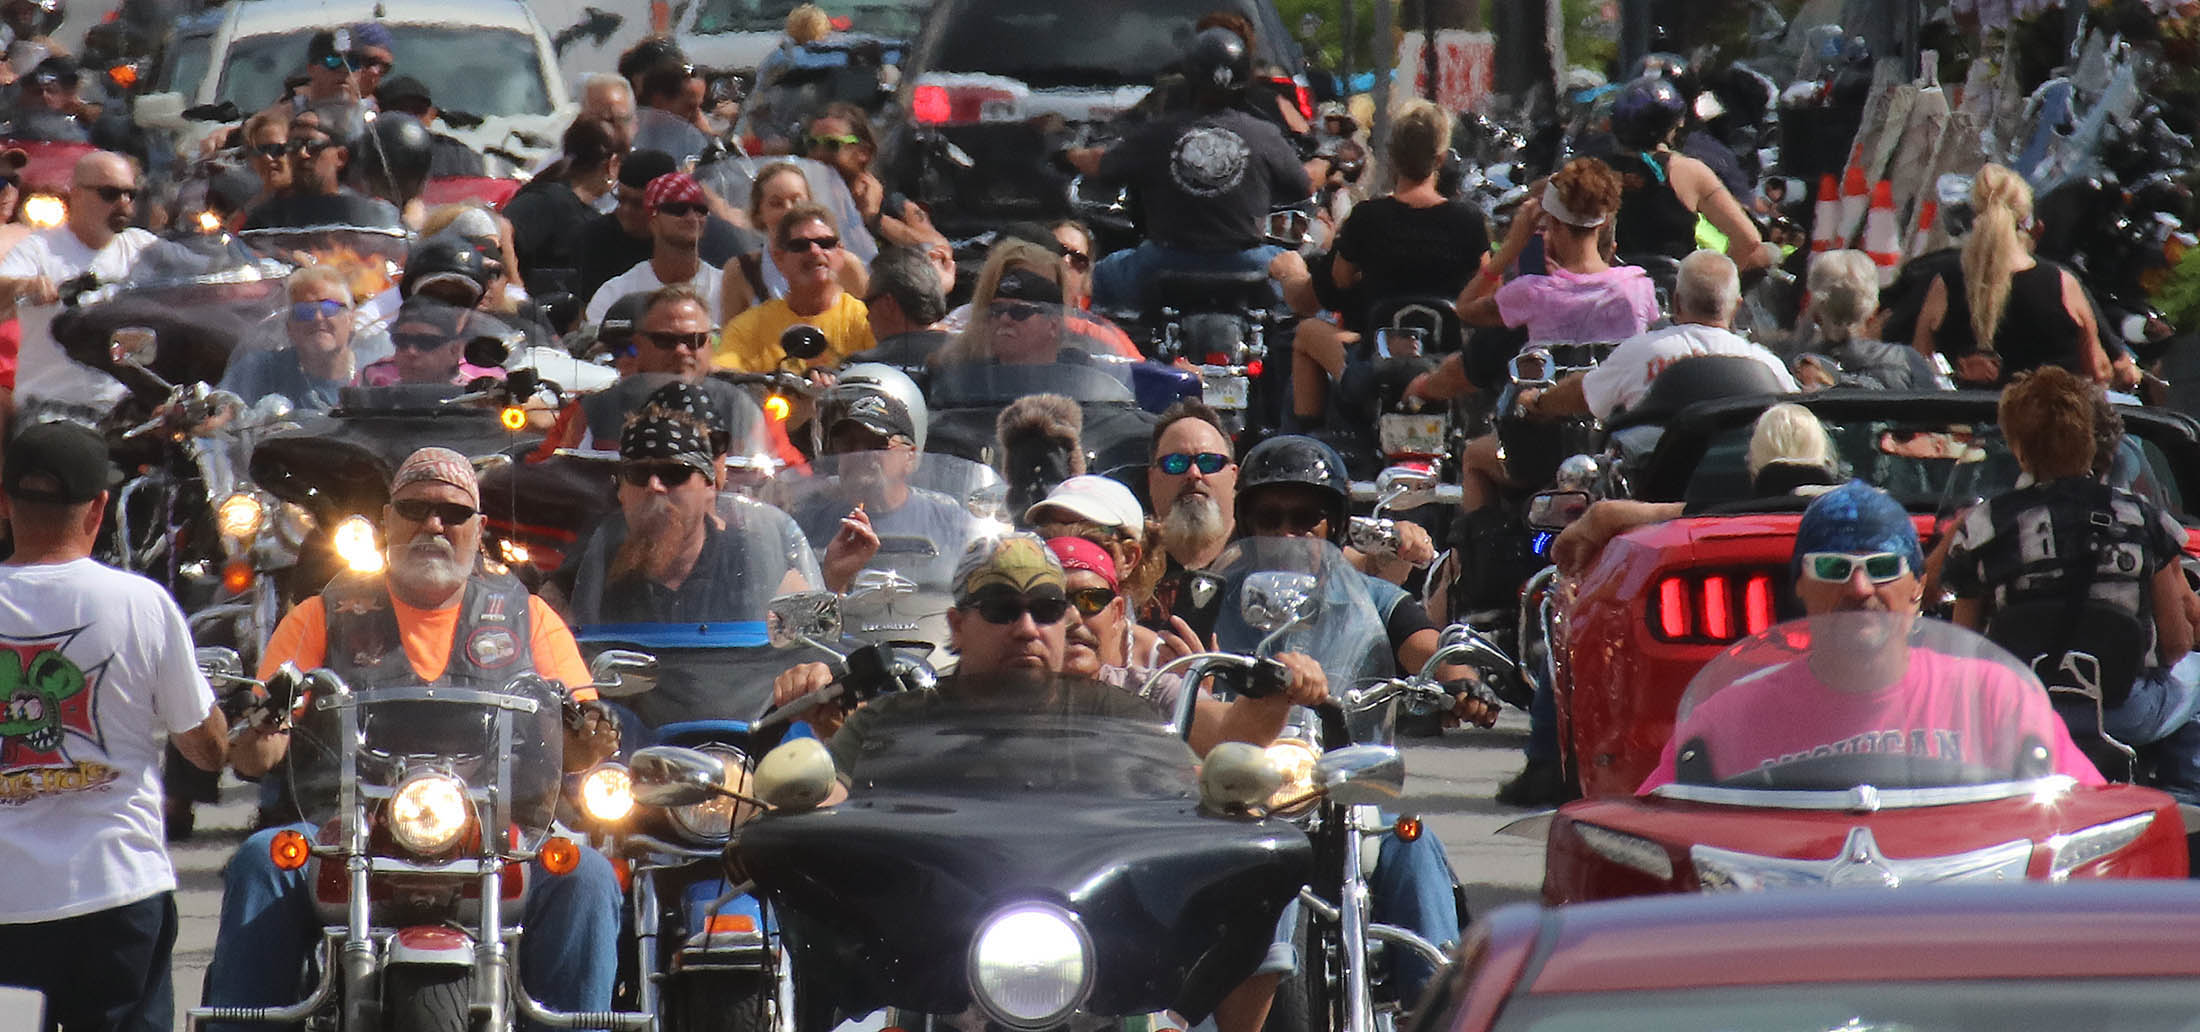 A sea of motorcycles and riders pack Main Street as Biketoberfest heads into the weekend in Daytona Beach Friday October 20, 2017. [NEWS-JOURNAL/Jim Tiller]